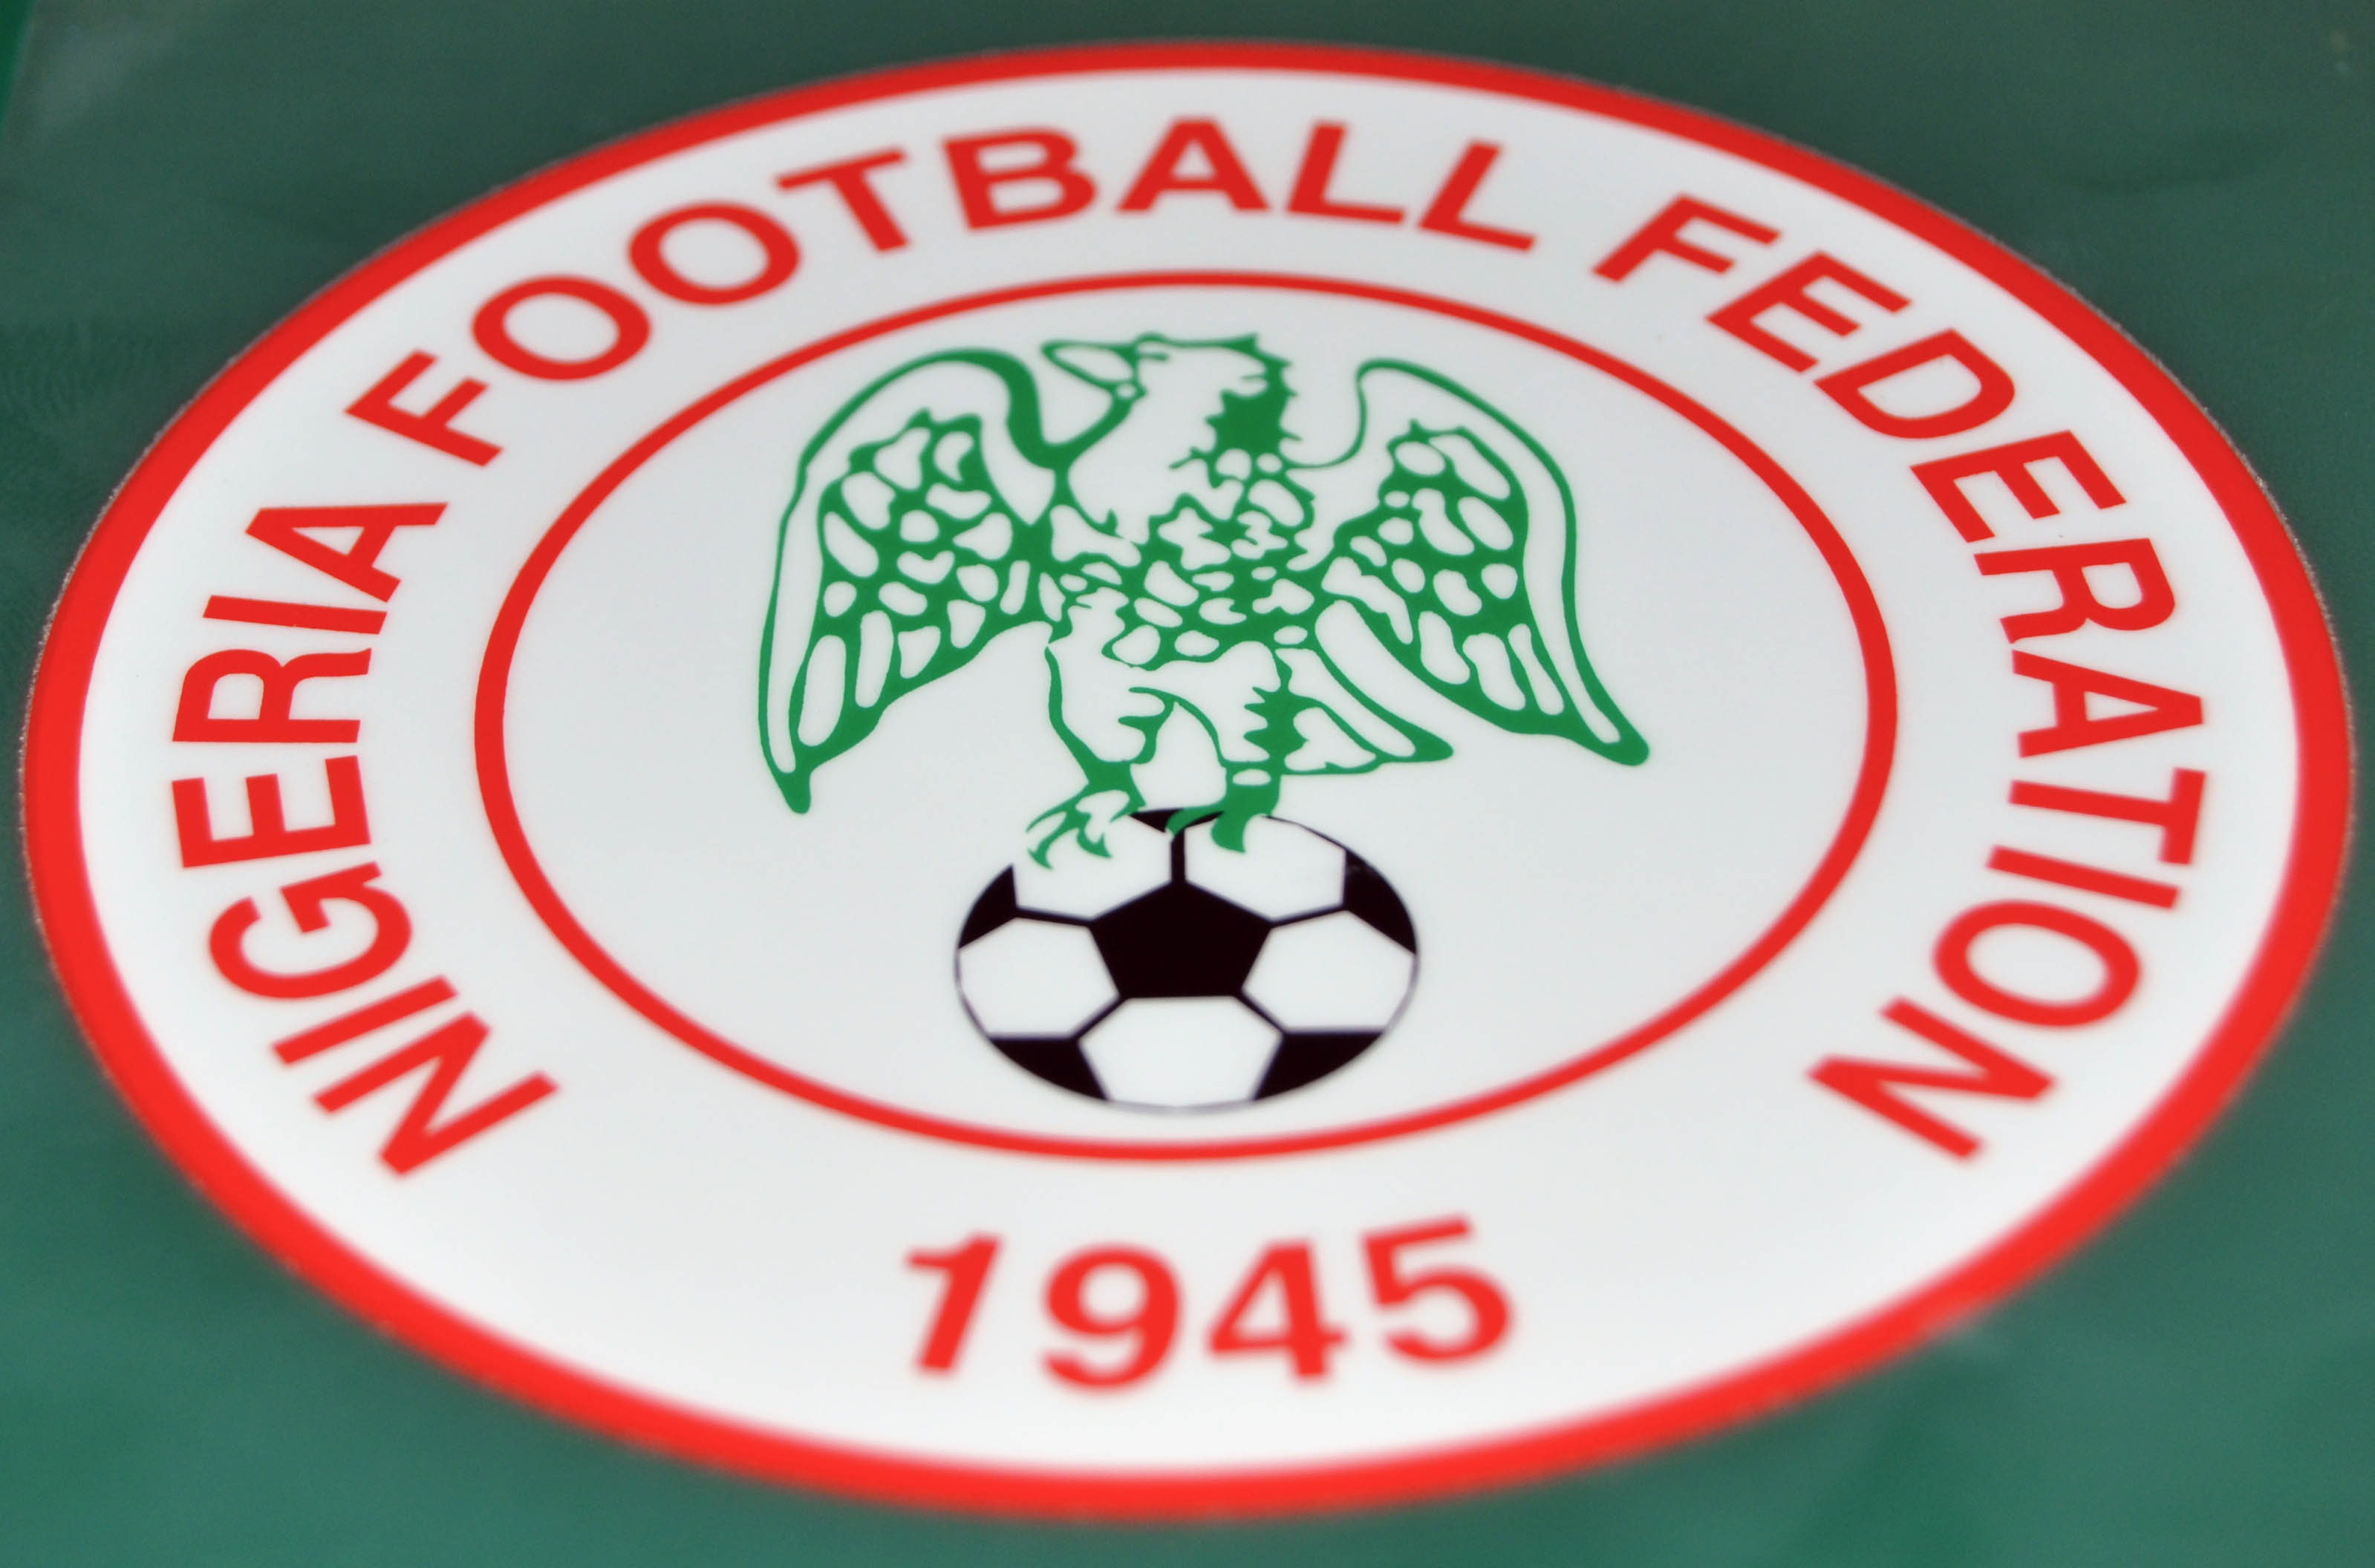 Nigeria docked points, World Cup qualification unaffected